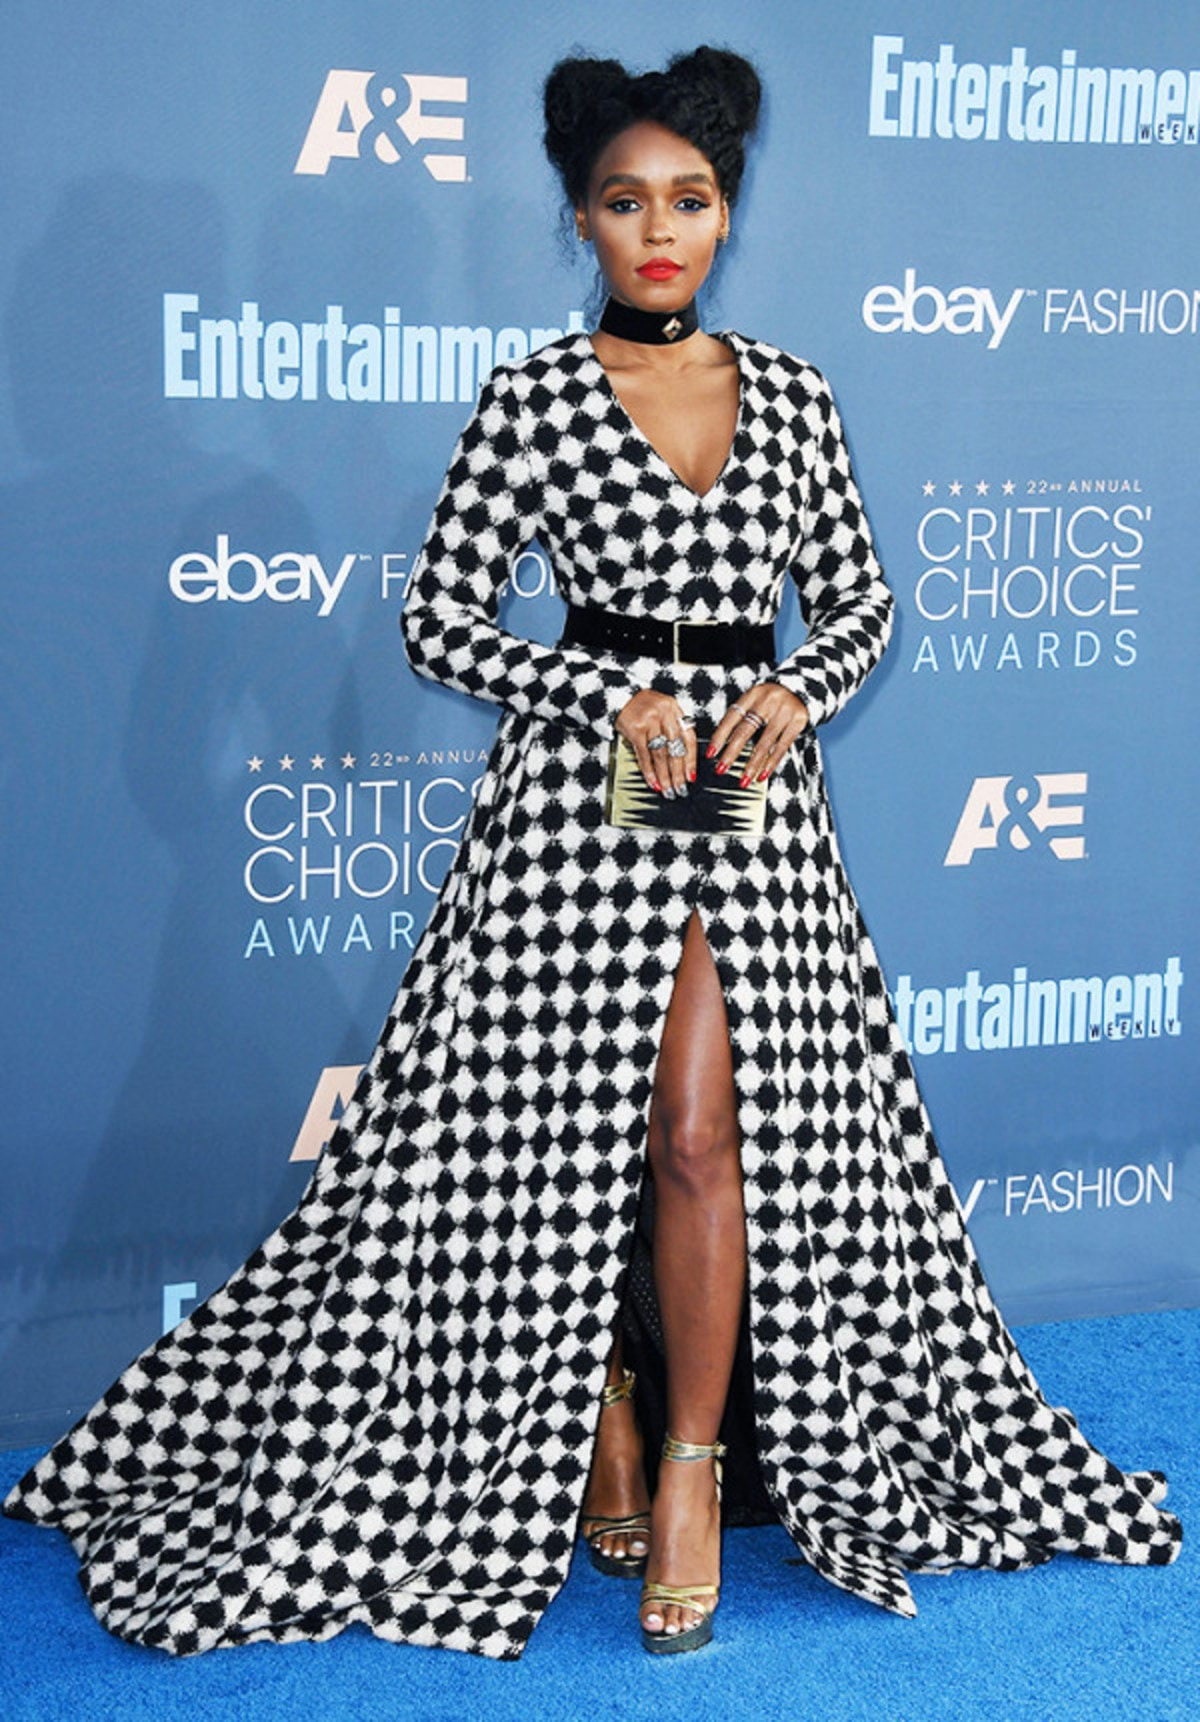 the-best-red-carpet-looks-from-the-critics-choice-awards-2075078.600x0c